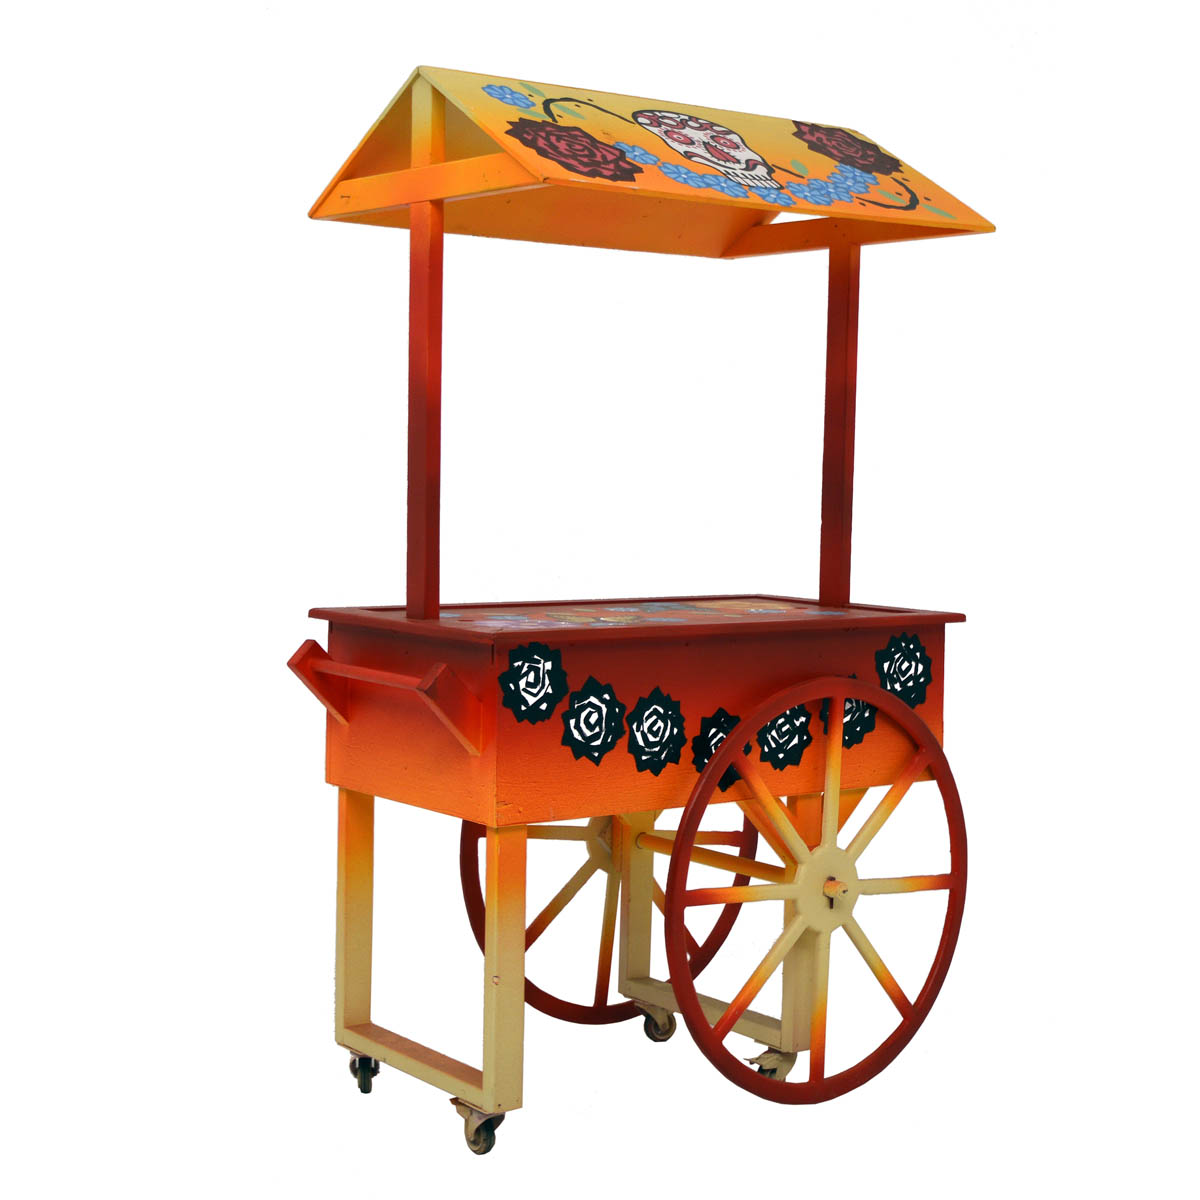 Cart 1 – Mexican Style Cart